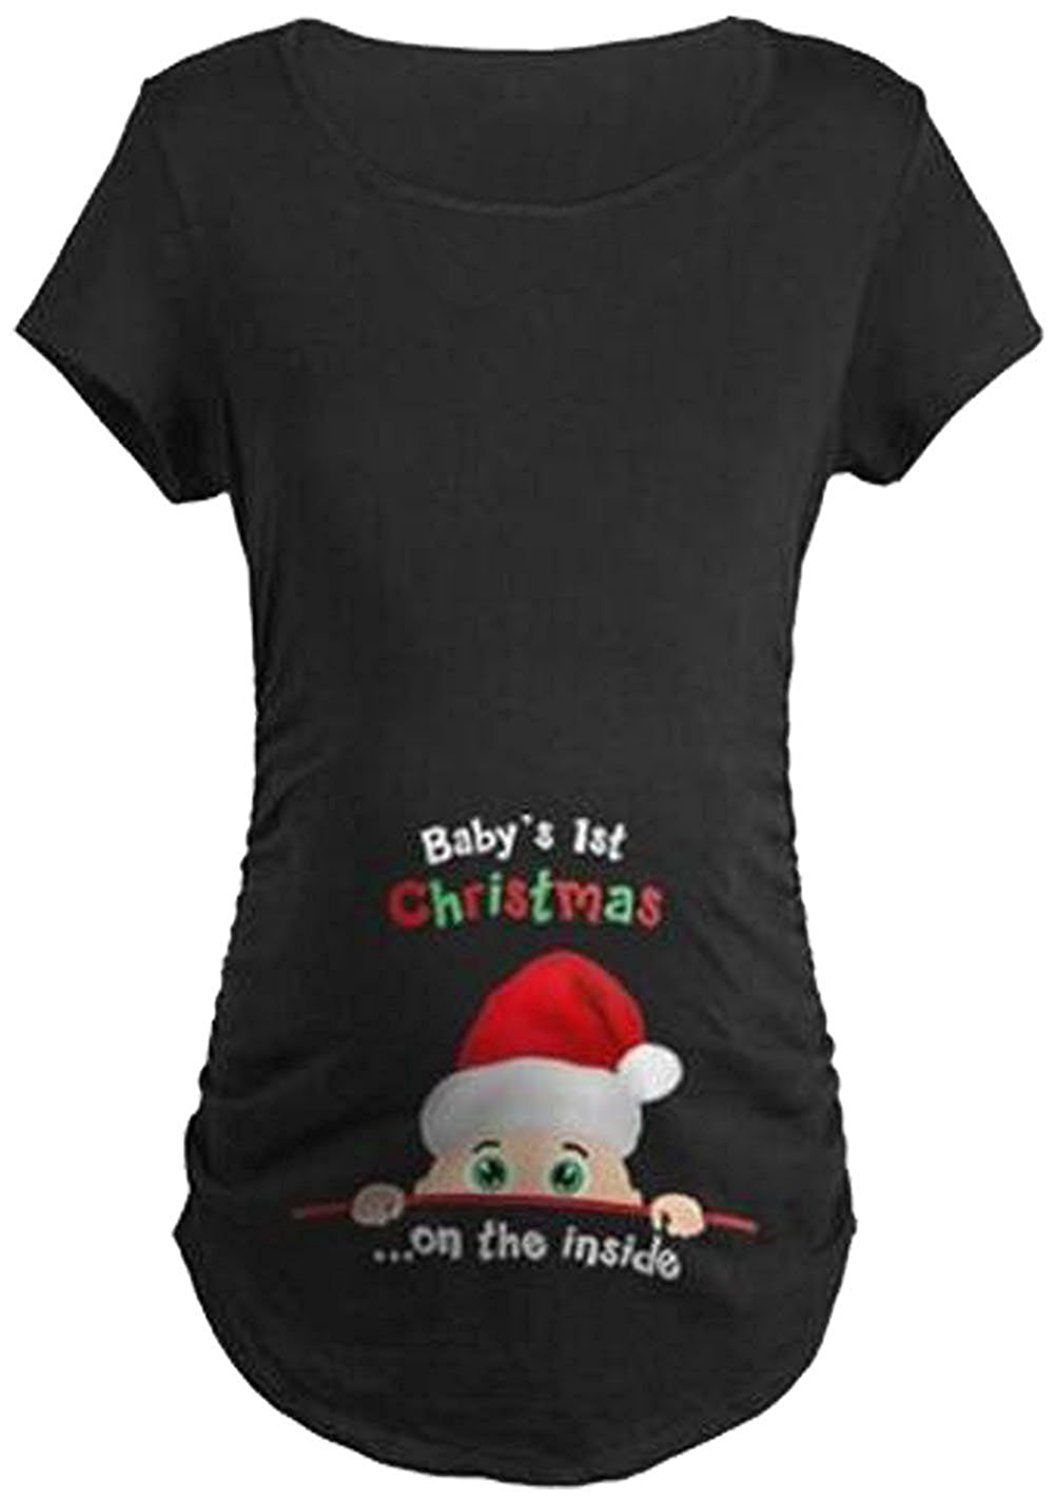 MNLYBABY Baby's 1st Christmas Maternity T-Shirt Funny Short Sleeve Pregnancy Tee Size L(Black)